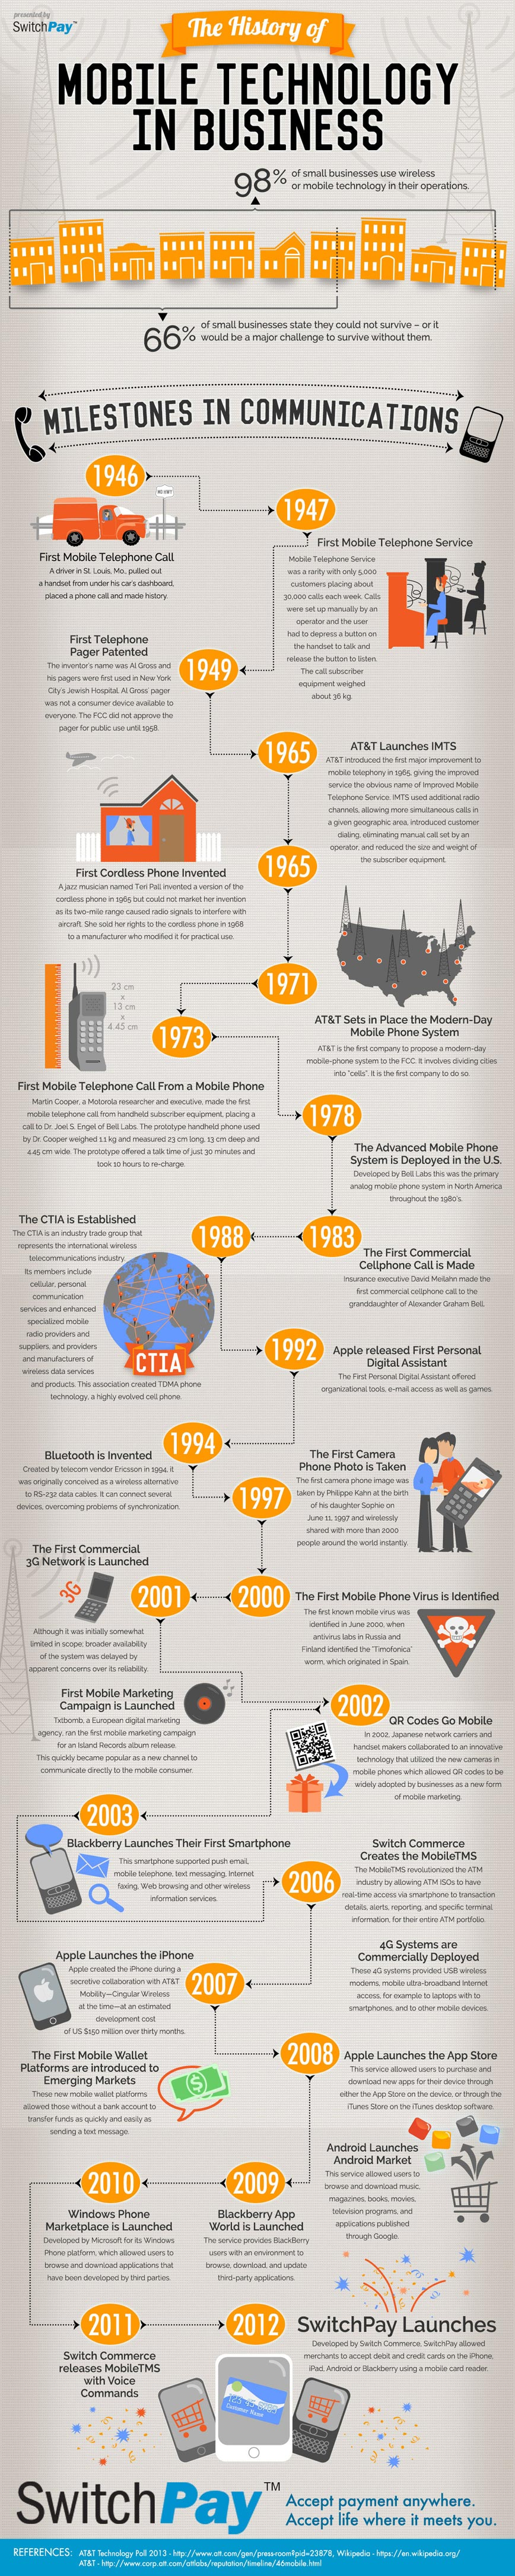 Mobile Technology in Business-Infographic